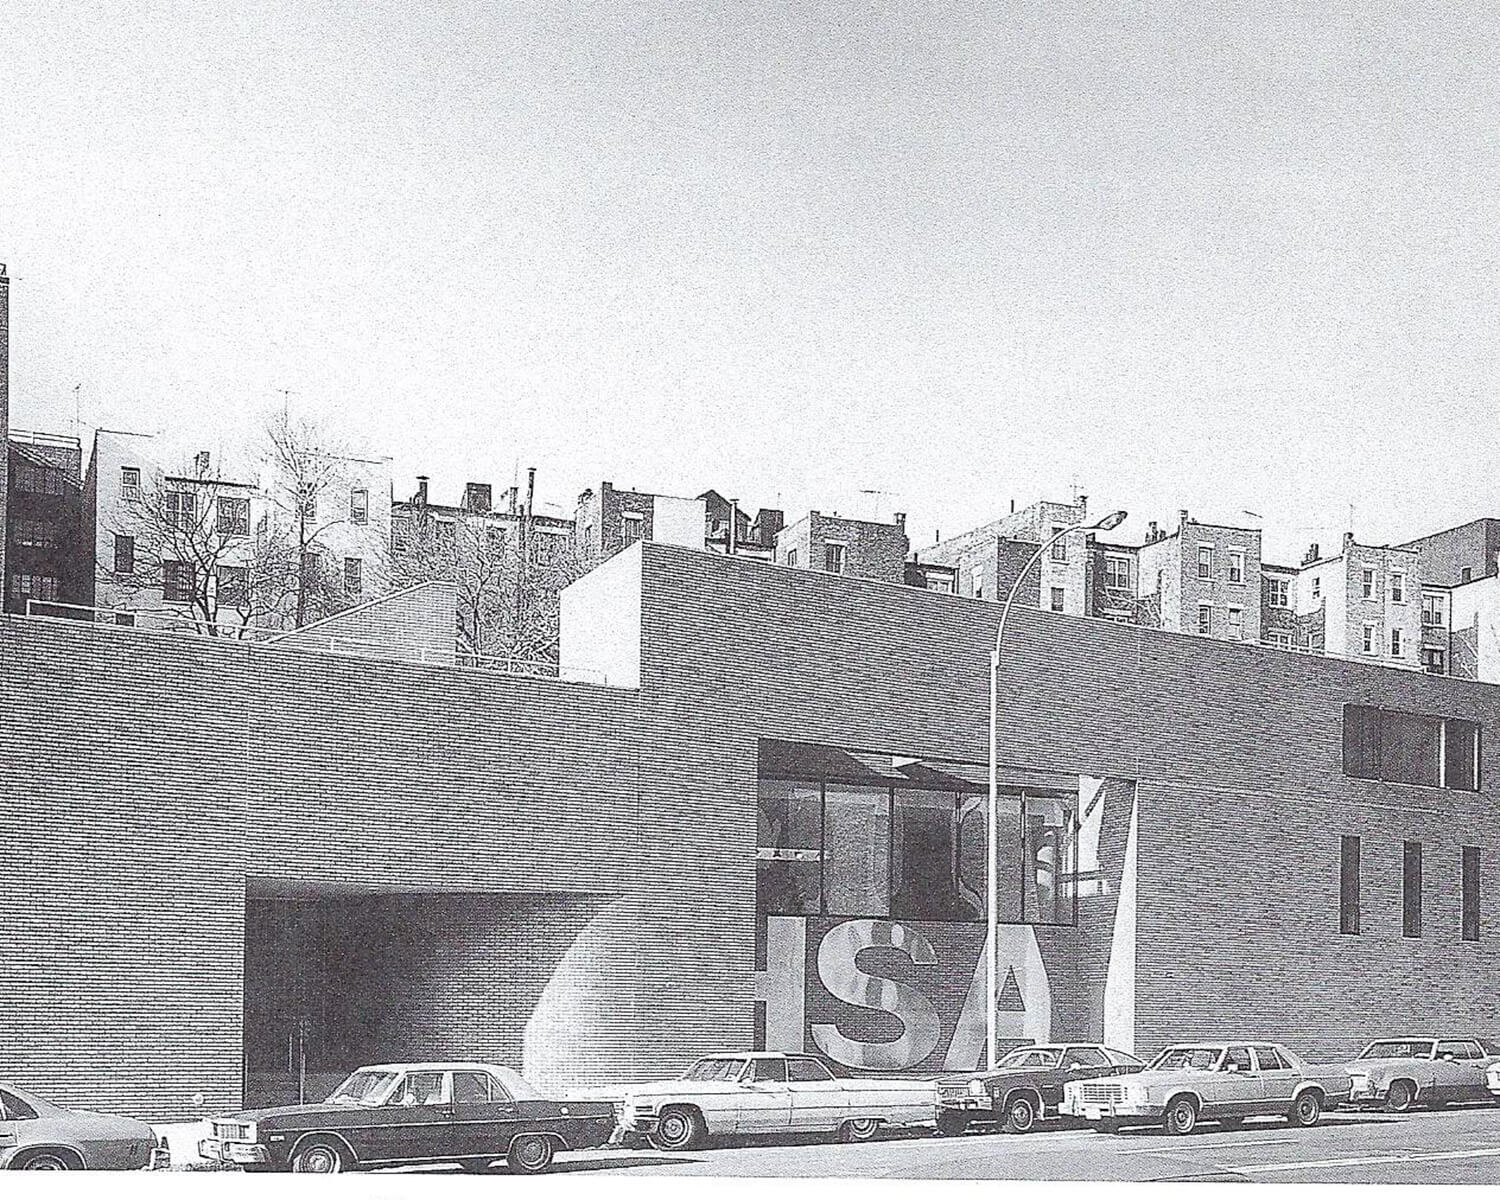 The Harlem School of the Arts as seen from the street, prior to renovation